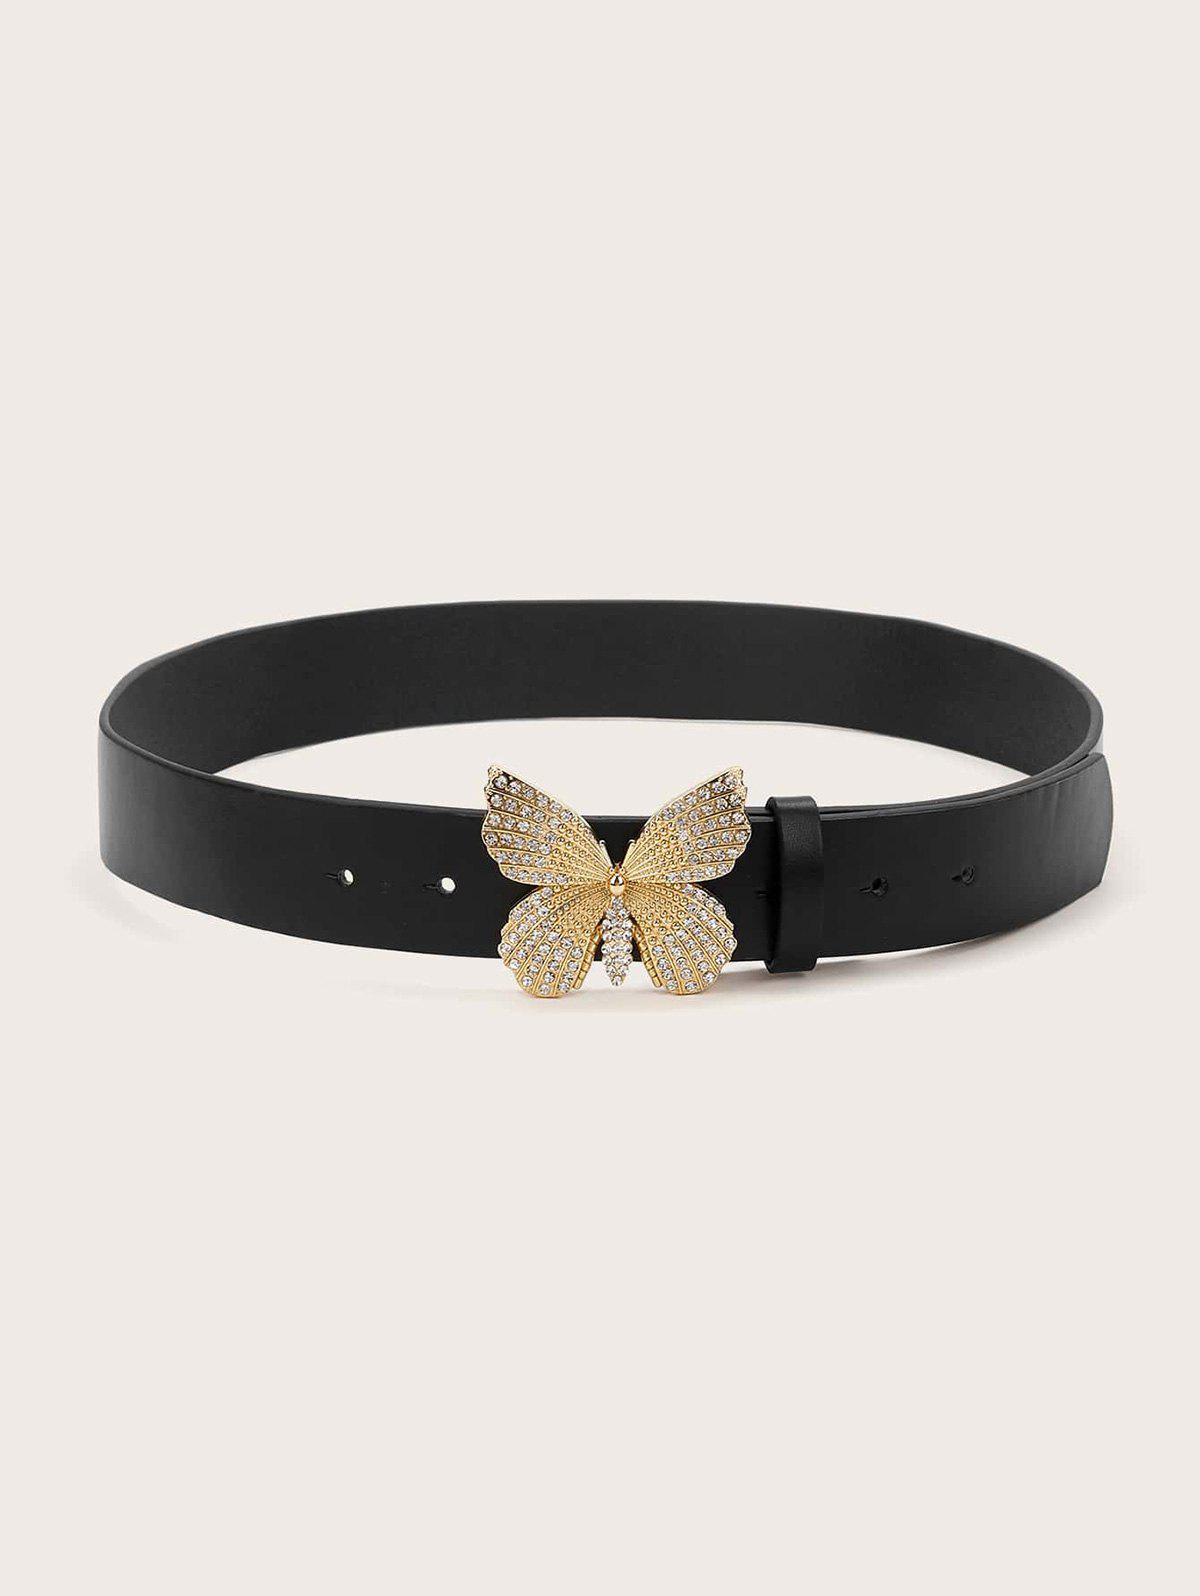 Store Carved Butterfly Rhinestone Buckle Belt